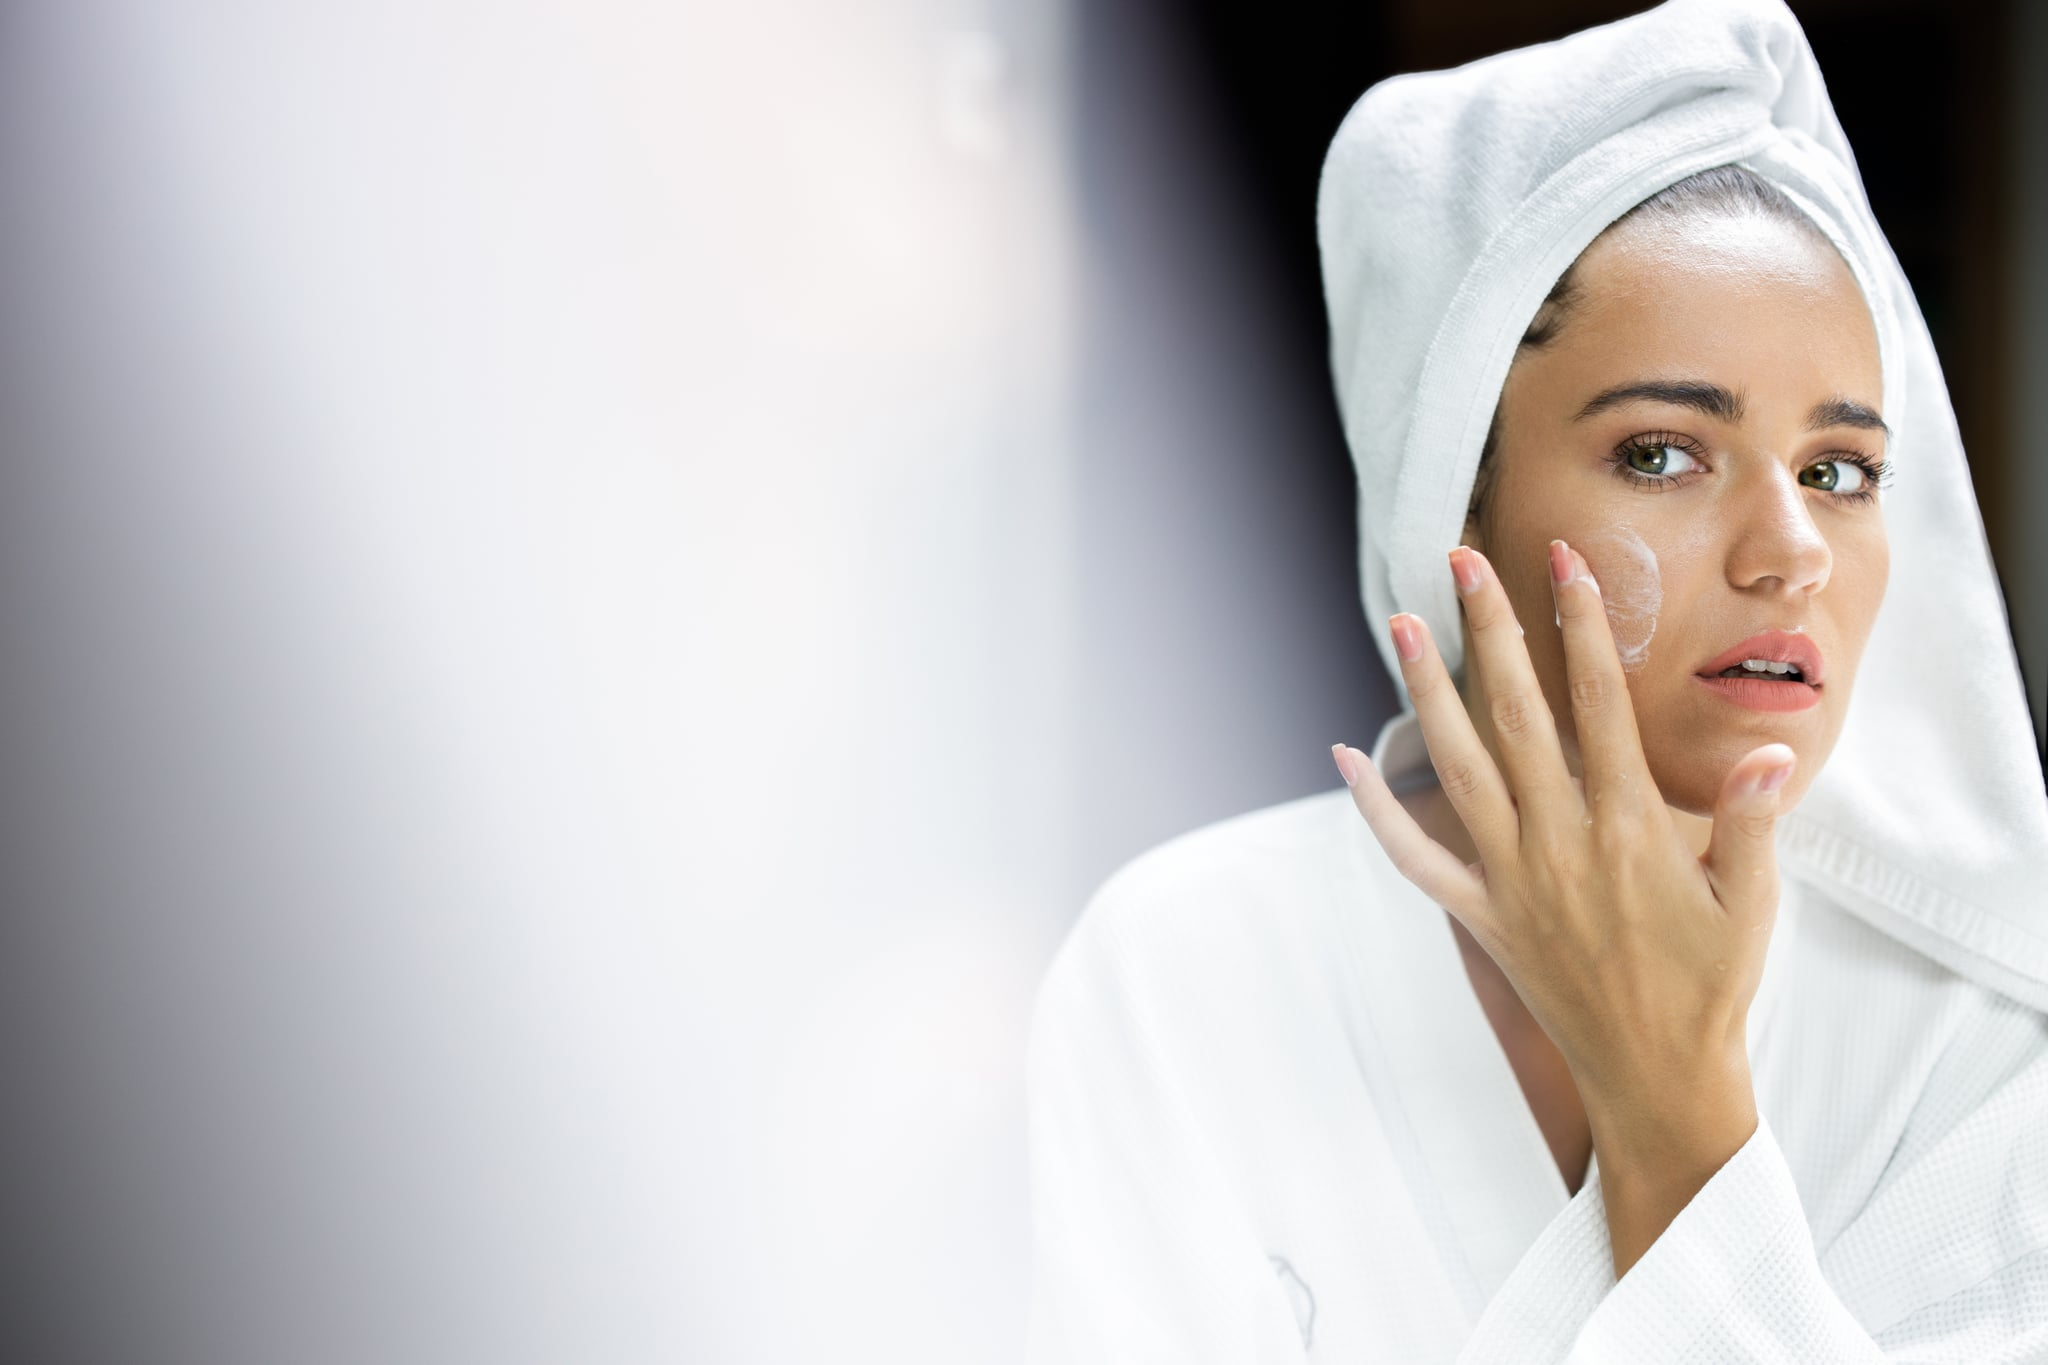 Reflection in a mirror of a woman wrapped in a towel applying face cream in a bathroom. Copy space.